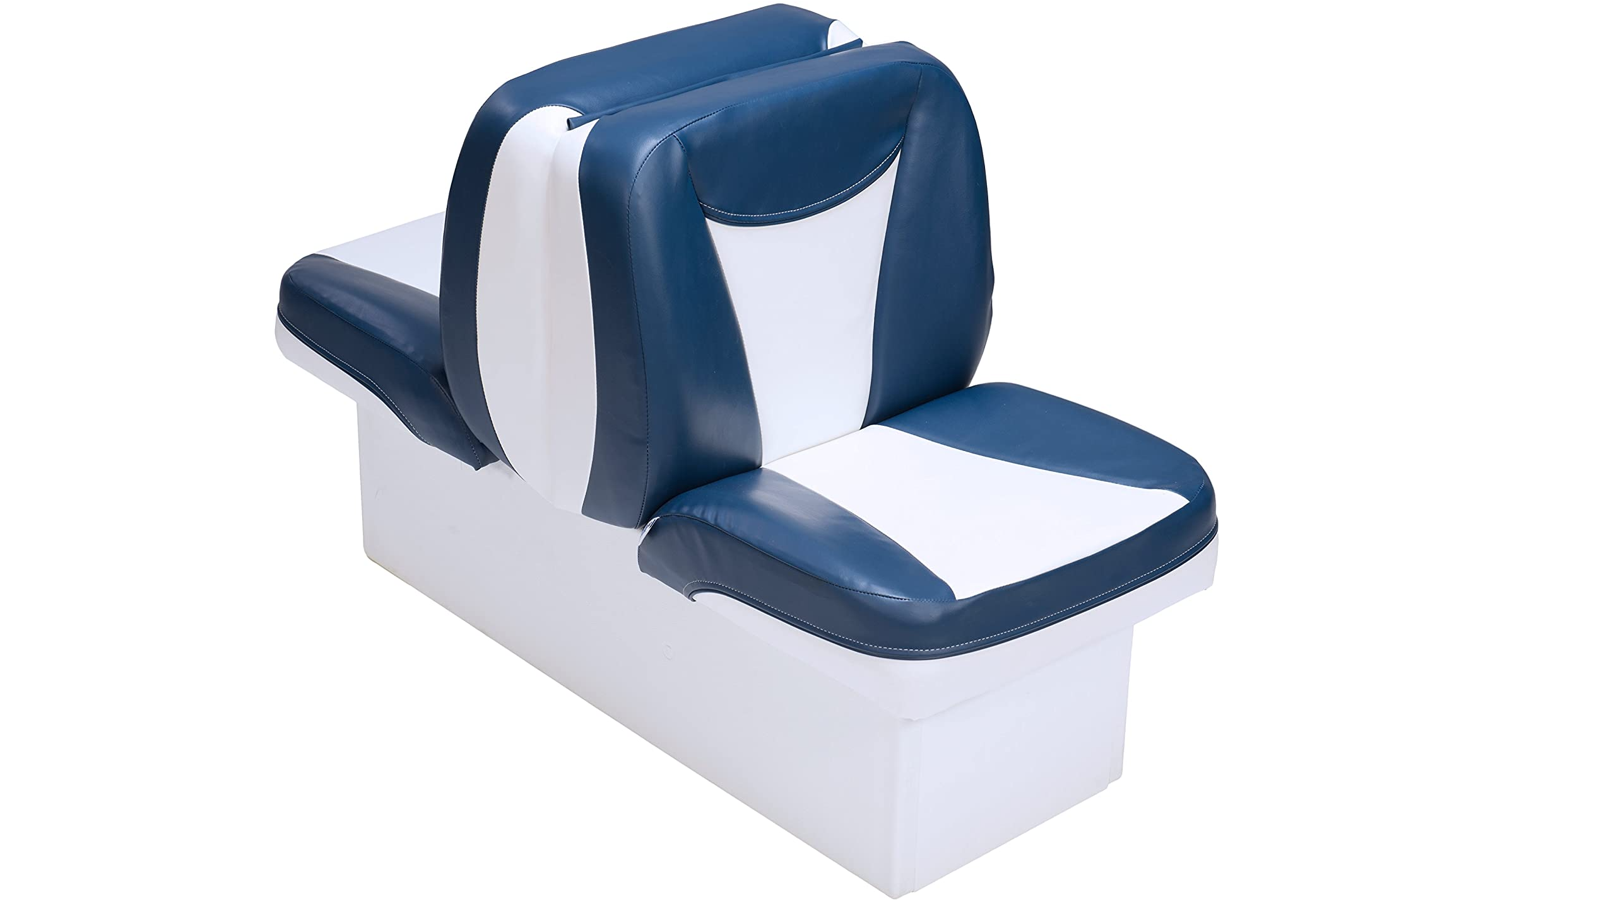 back-to-back blue and white padded boat seats